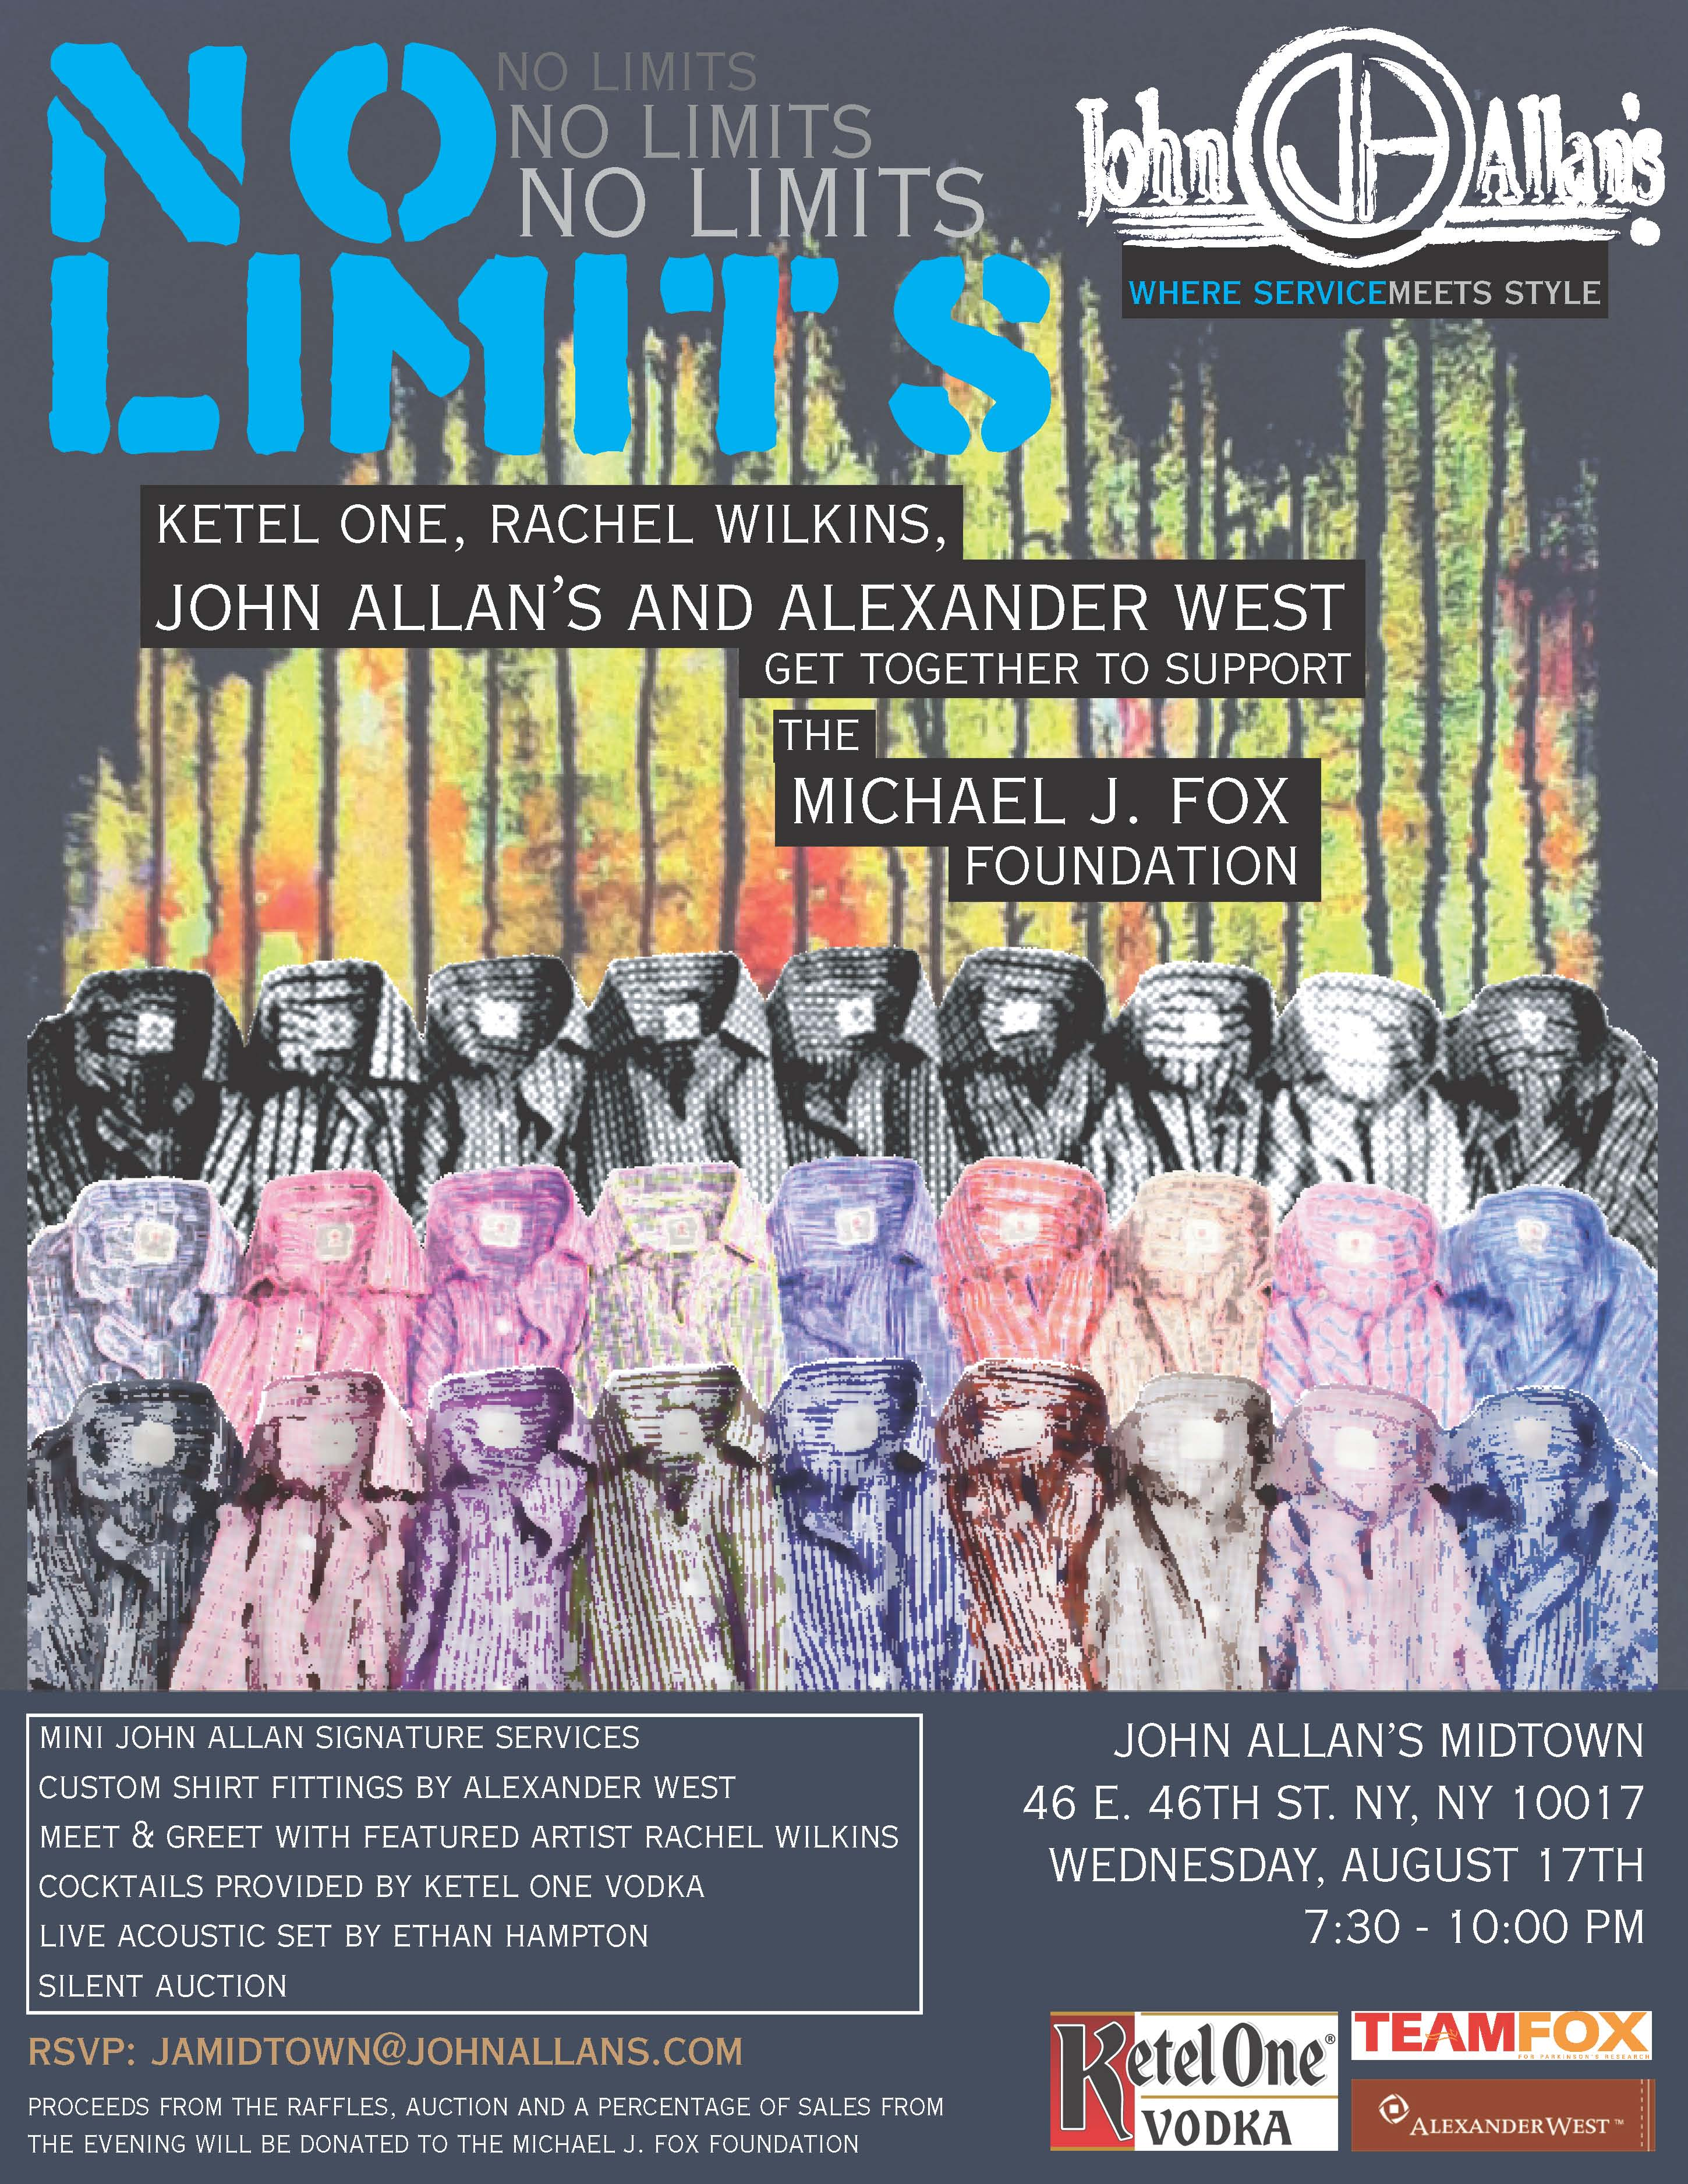 """NO LIMITS"" solo art show opening for RACHEL WILKINS at John Allans Midtown"